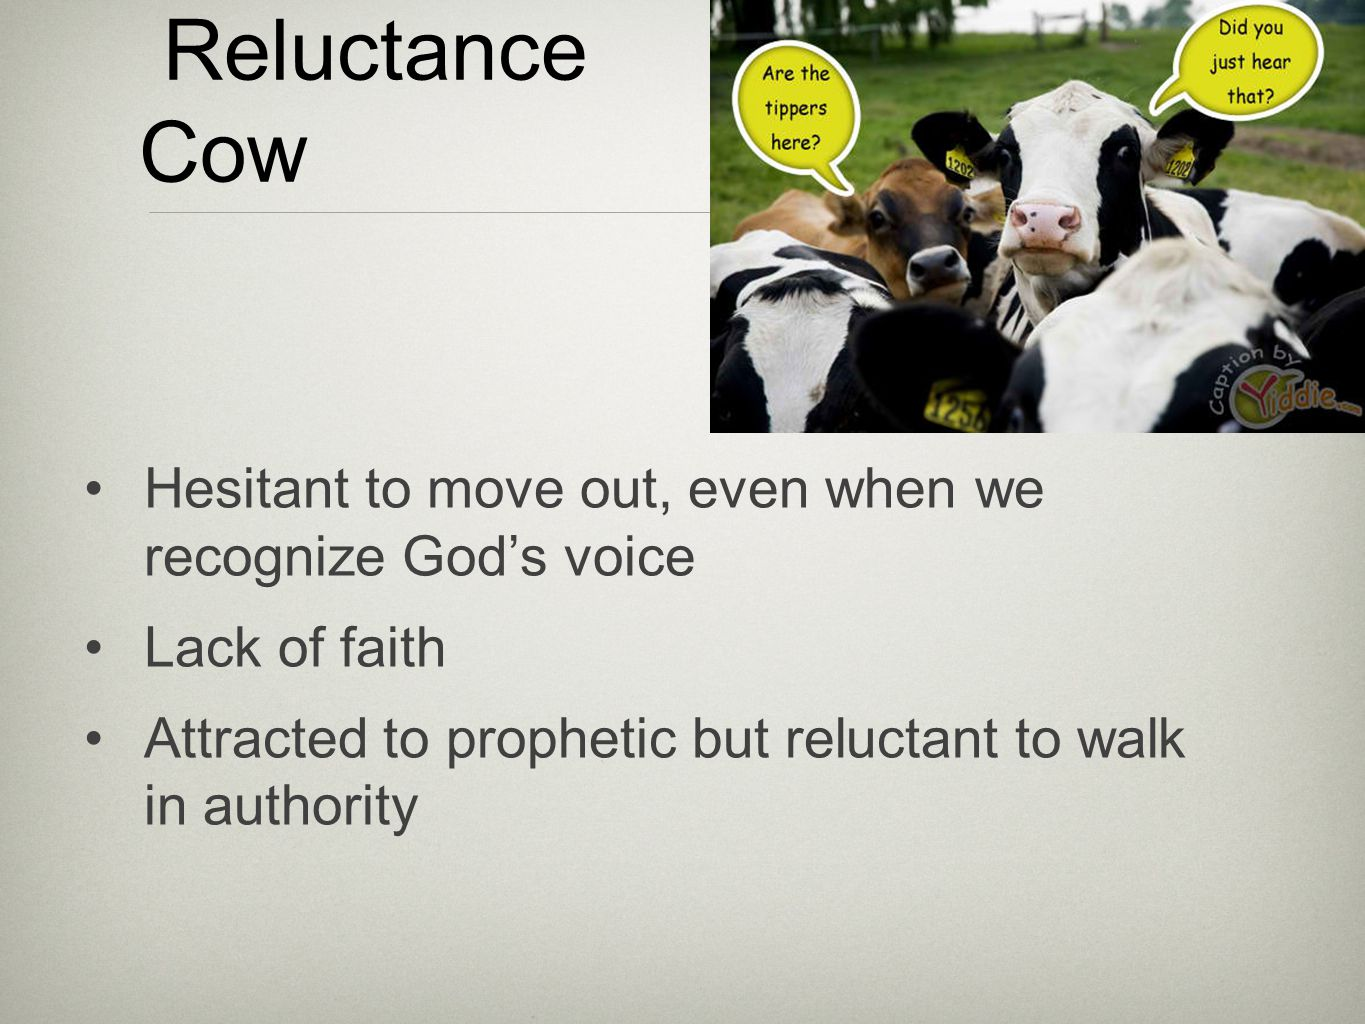 Reluctance Cow Hesitant to move out, even when we recognize God's voice Lack of faith Attracted to prophetic but reluctant to walk in authority